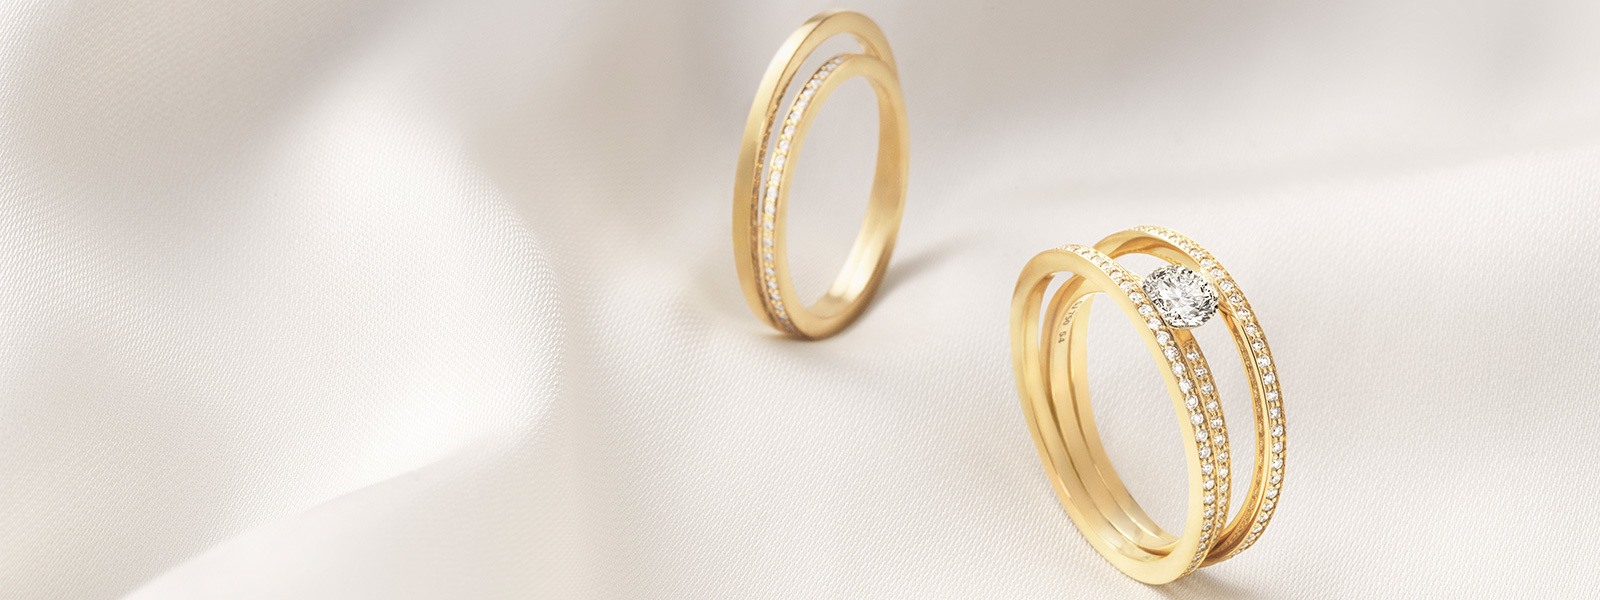 Engagement Rings And Wedding Bands Shop At Georg Jensen